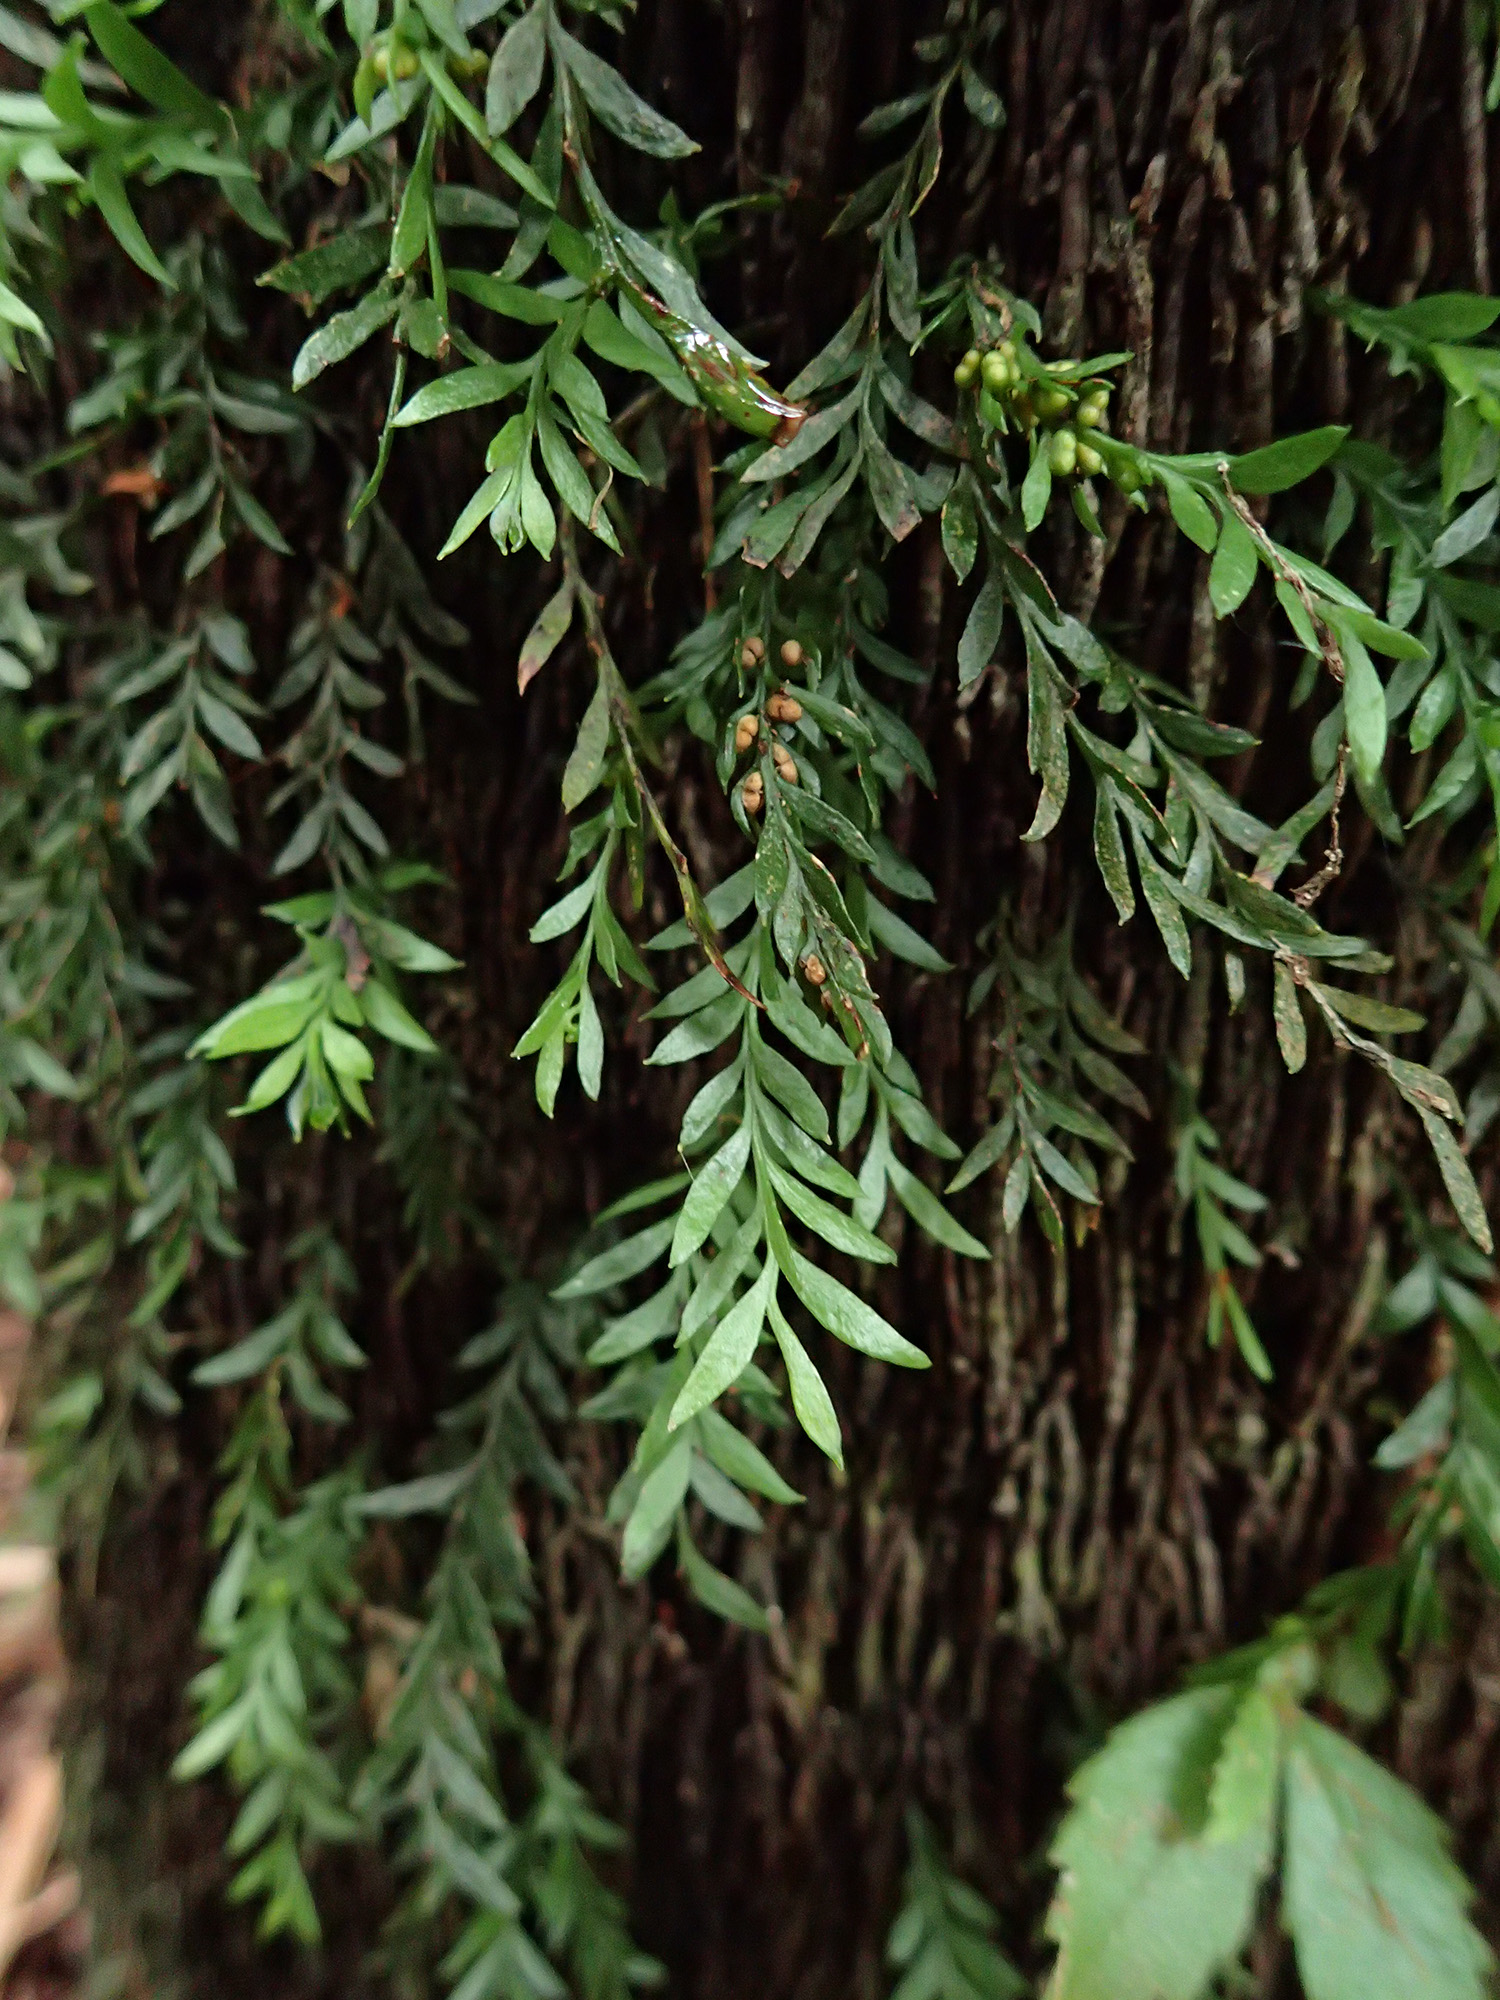 160315_-_Small_Fork-fern_within_Rainforest-Pugaree_Rd_-_832-502-0017.jpg